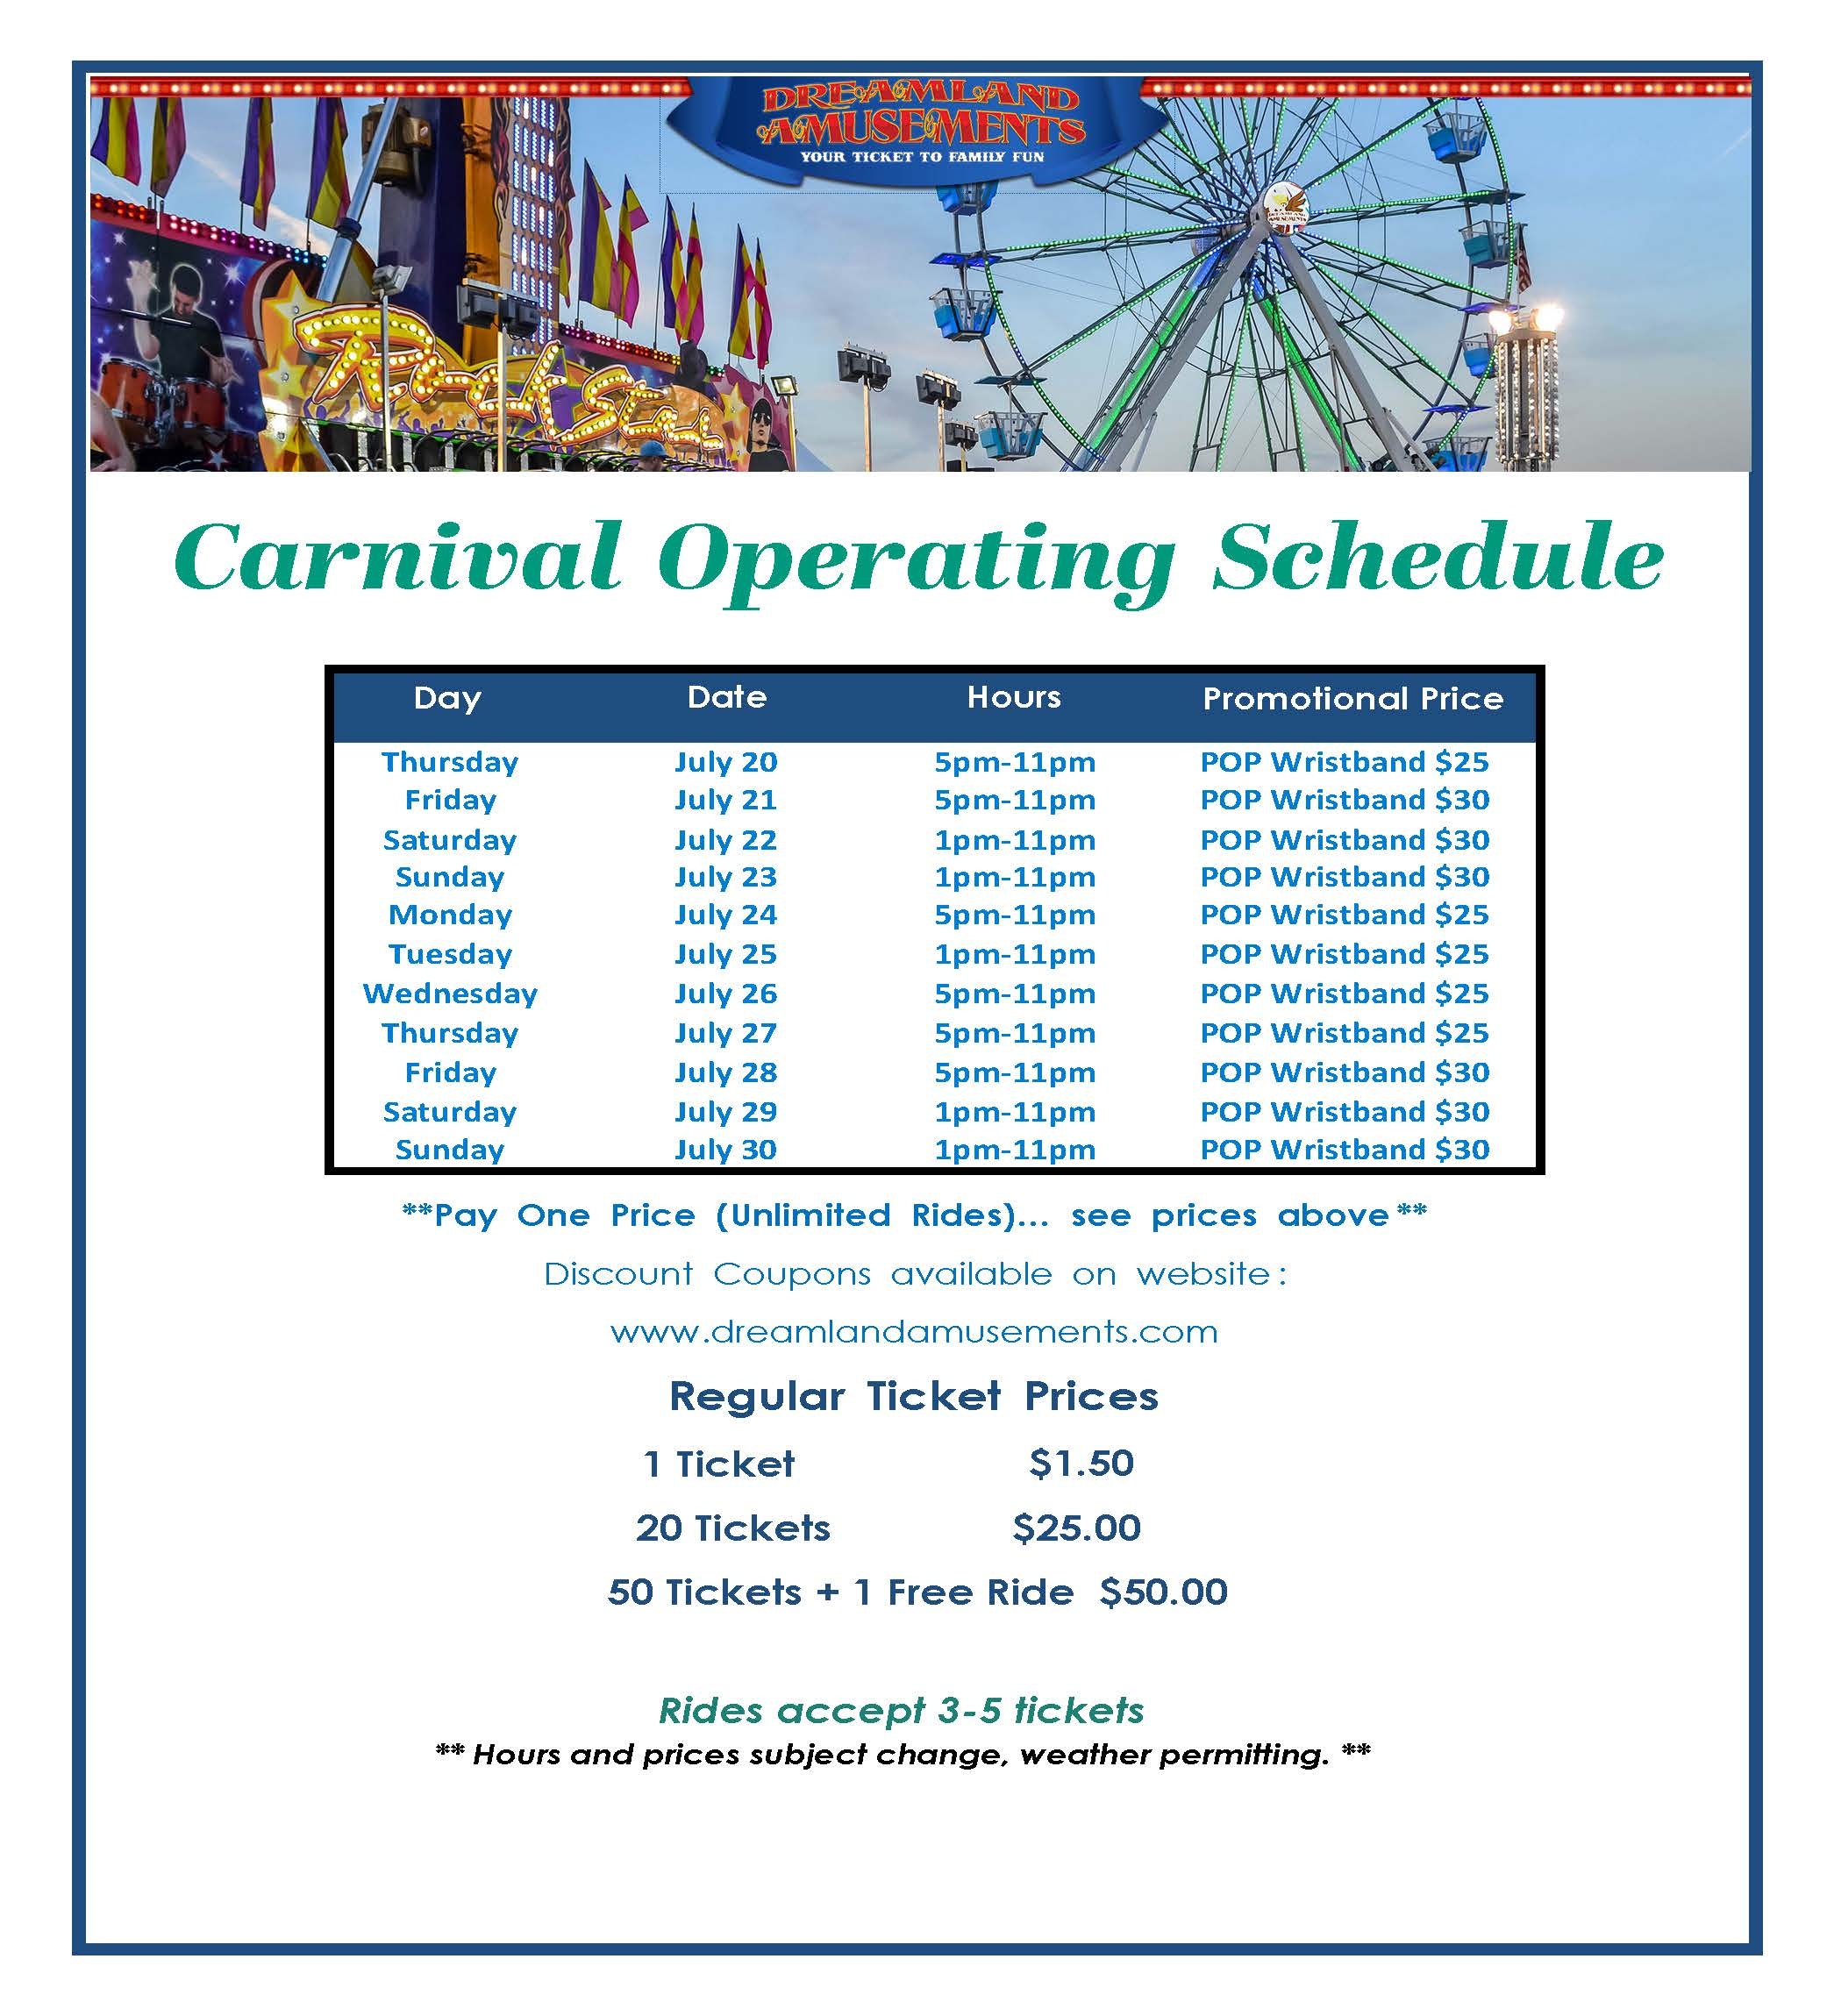 Broadway Mall Carnival- July 20th to 29th, 2017